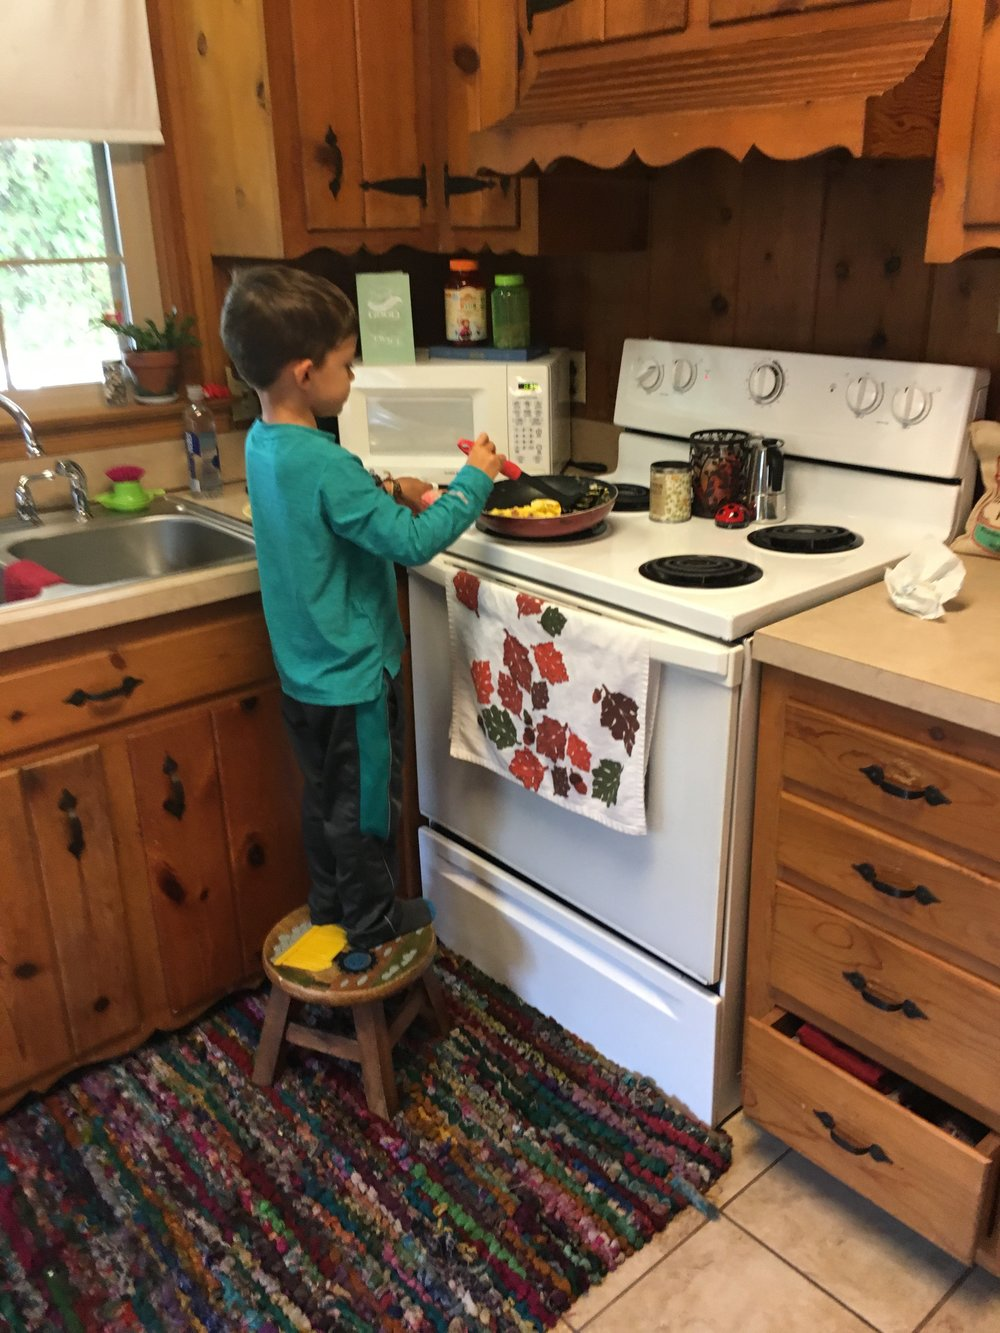 A Montessori 6 year old cooking weekend breakfast for his family.